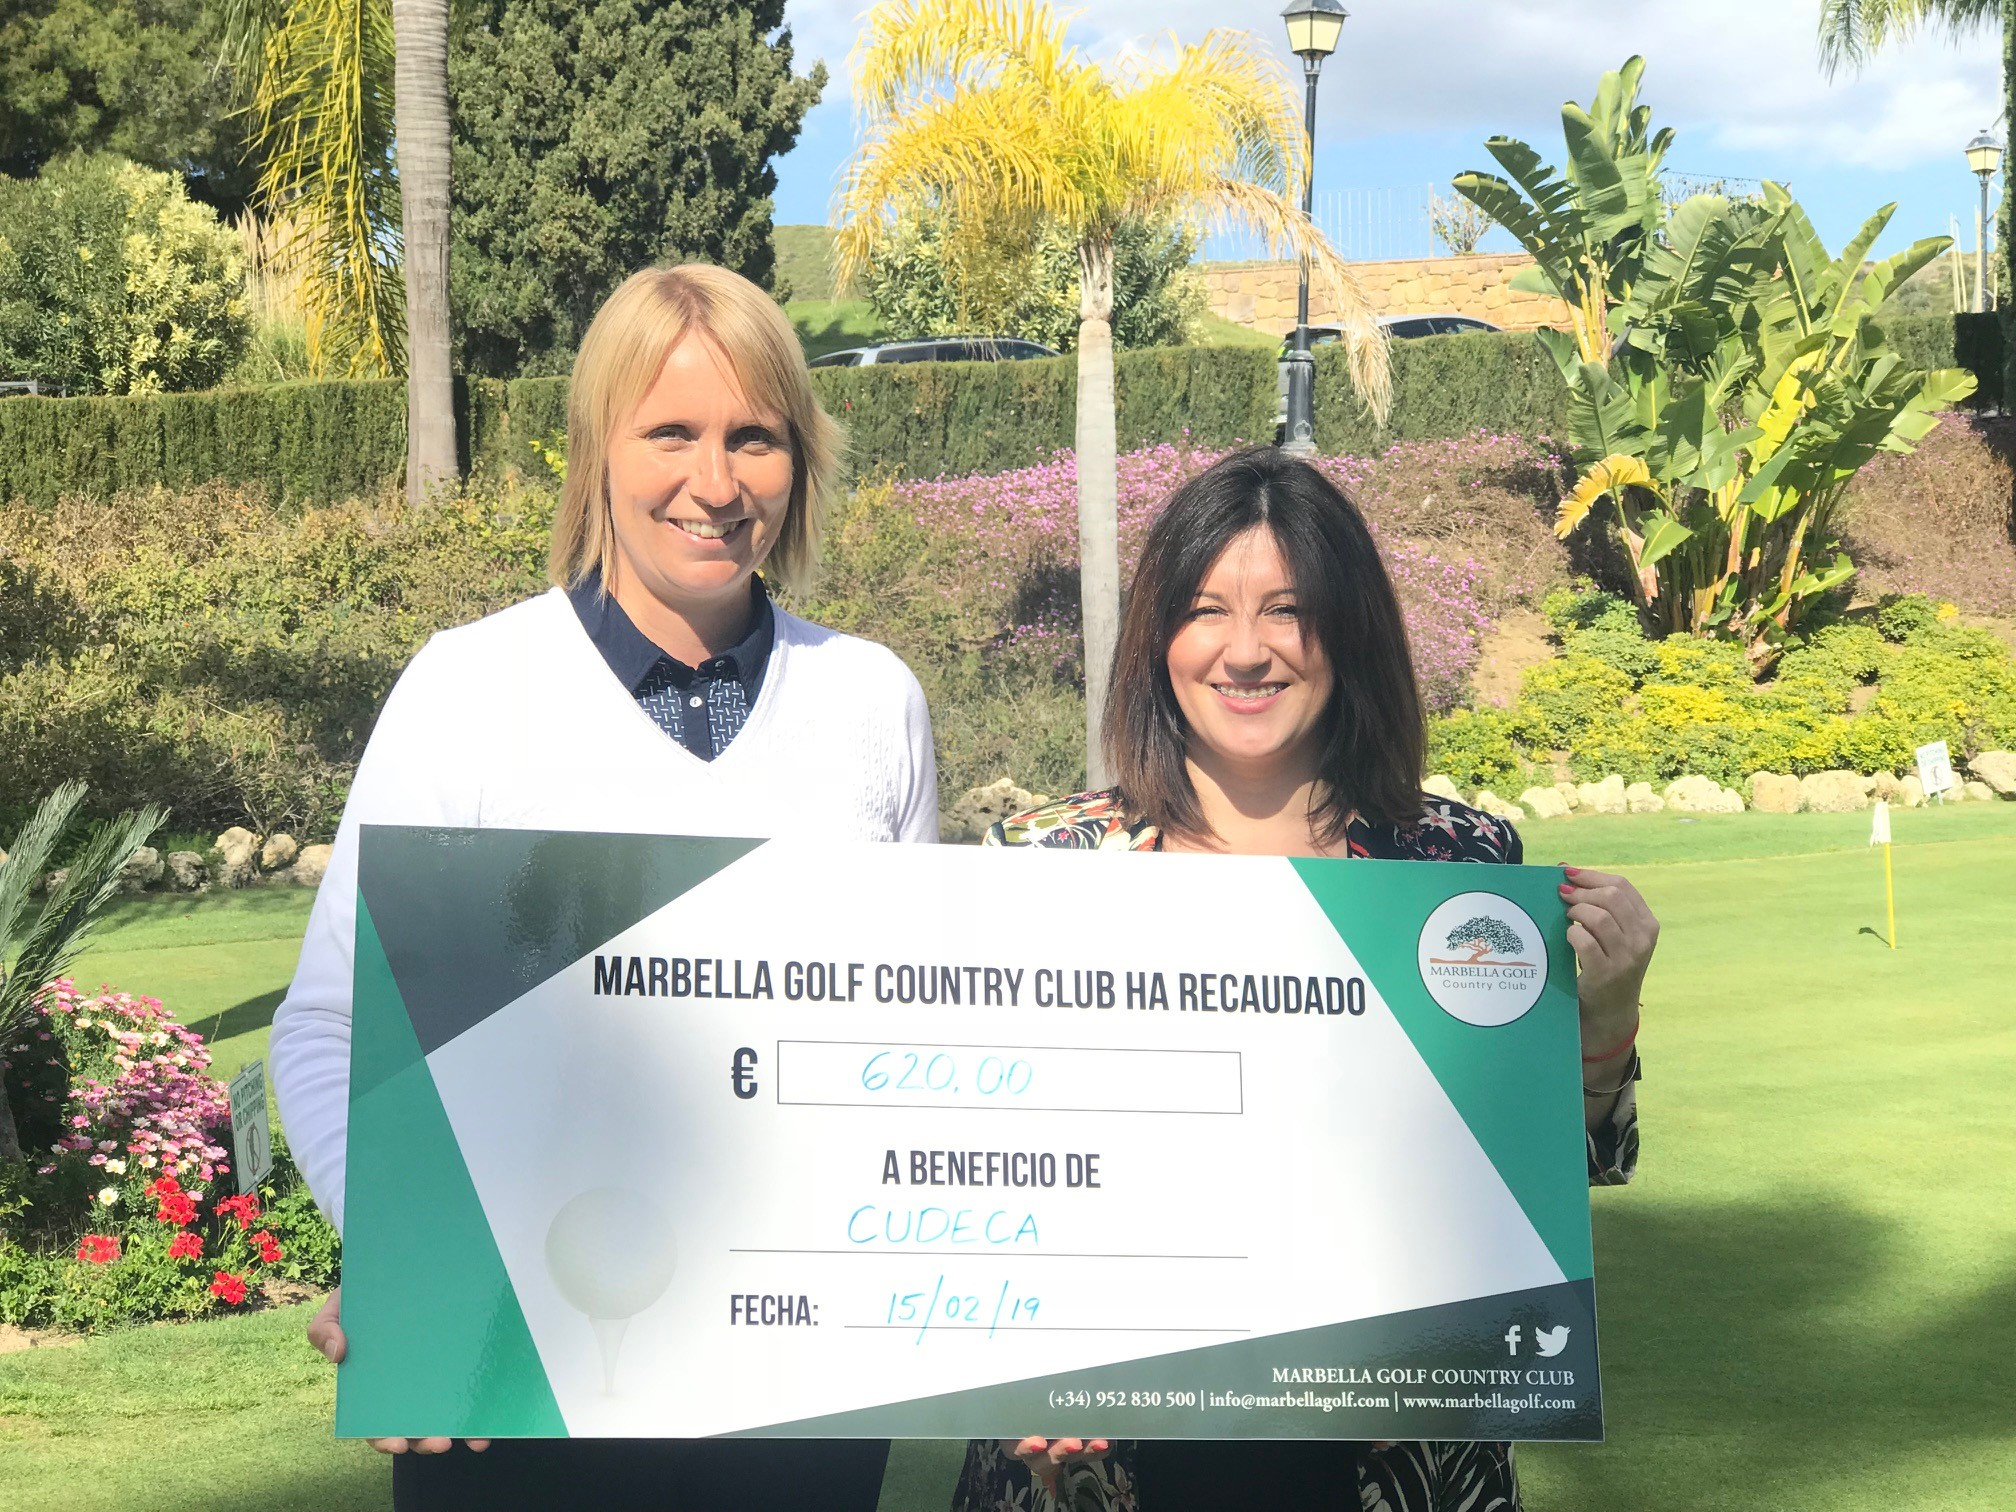 Marbella Golf Country Club helping us since 2015!